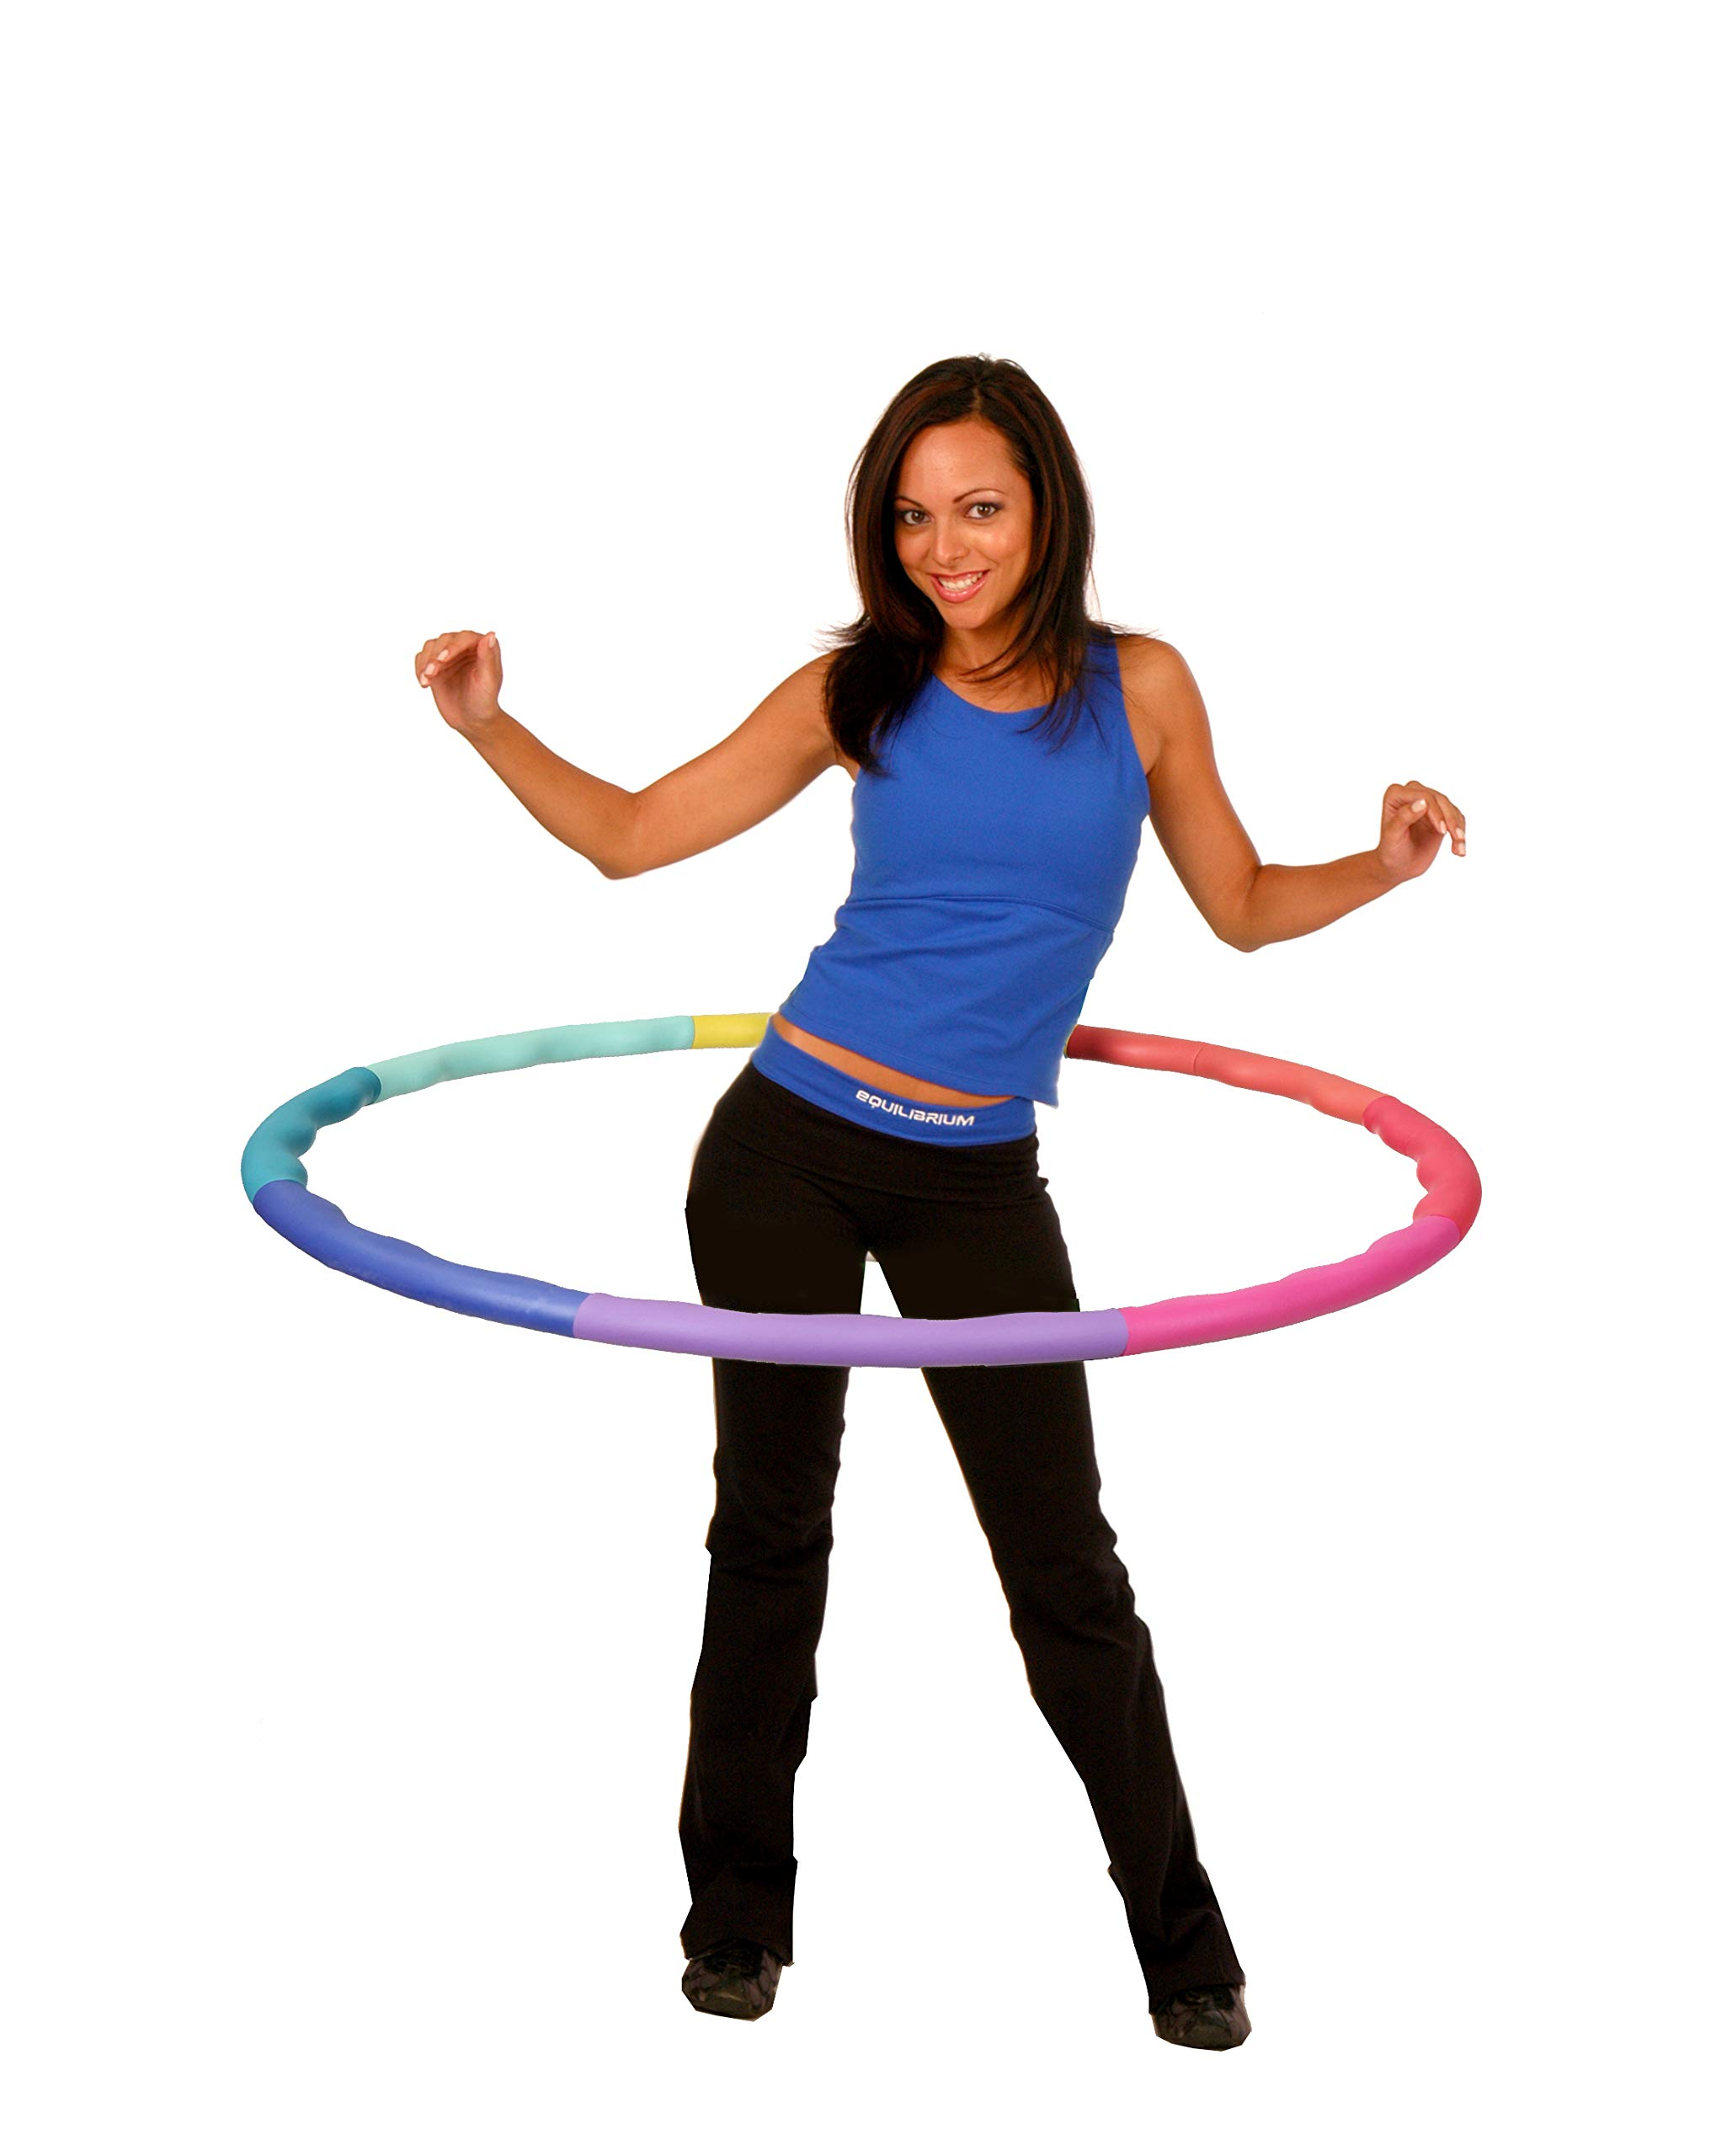 Sports Hoop Weighted Hoop, Weight Loss ACU Hoop 2S - 1.5lb (35.5 inches Wide) Small, Weighted Fitness Exercise Hula Hoop